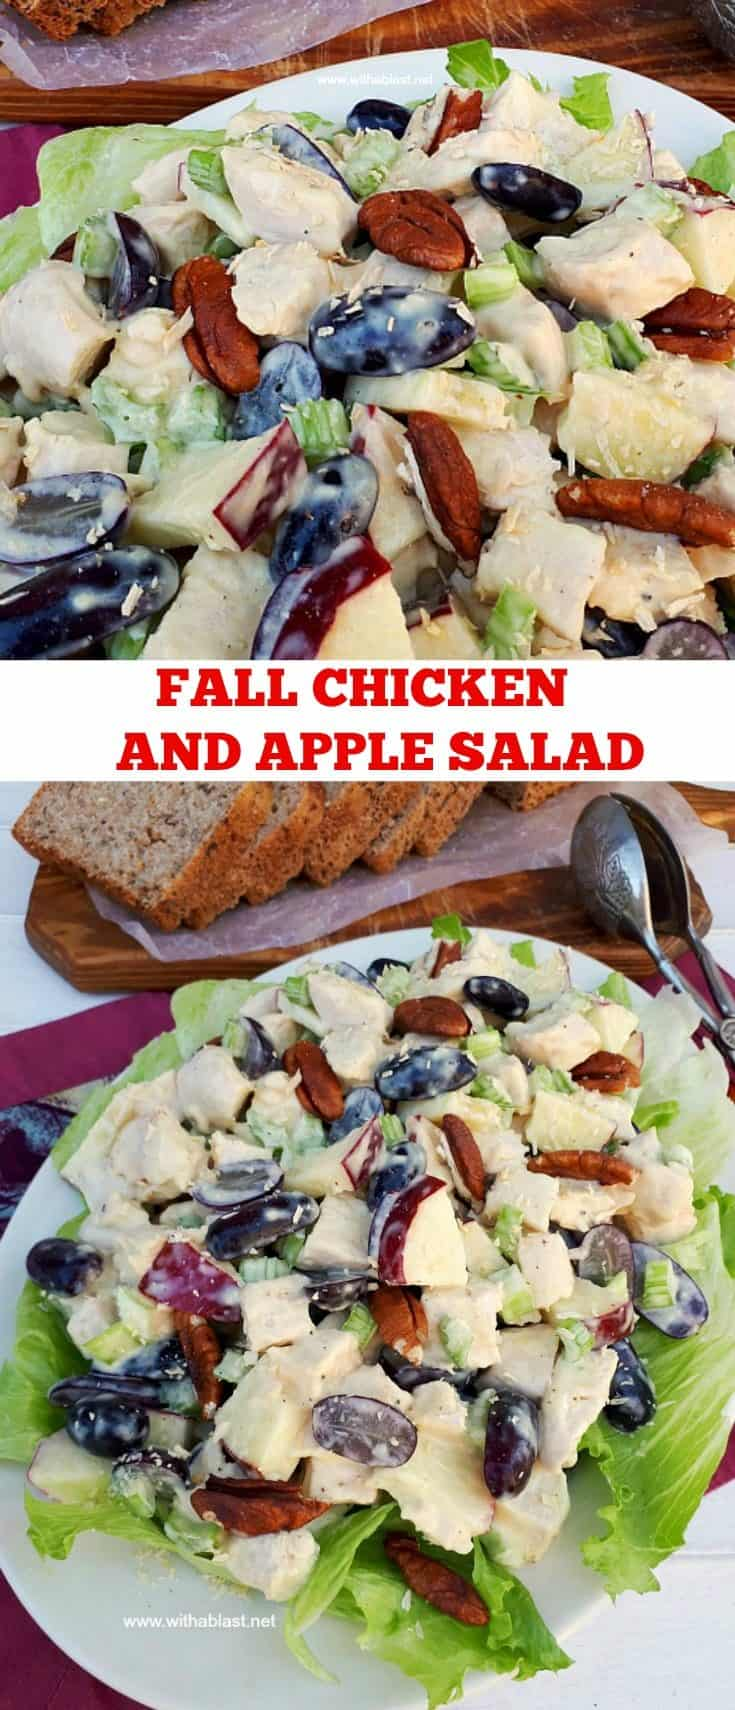 Fall Chicken And Apple Salad is a filling, fruity salad, packed with fruit and perfect to serve as a light dinner or lunch #ChickenSalad #FallSalad #AppleRecipes #ChickenRecipes #AppleSalad #HealthyEating